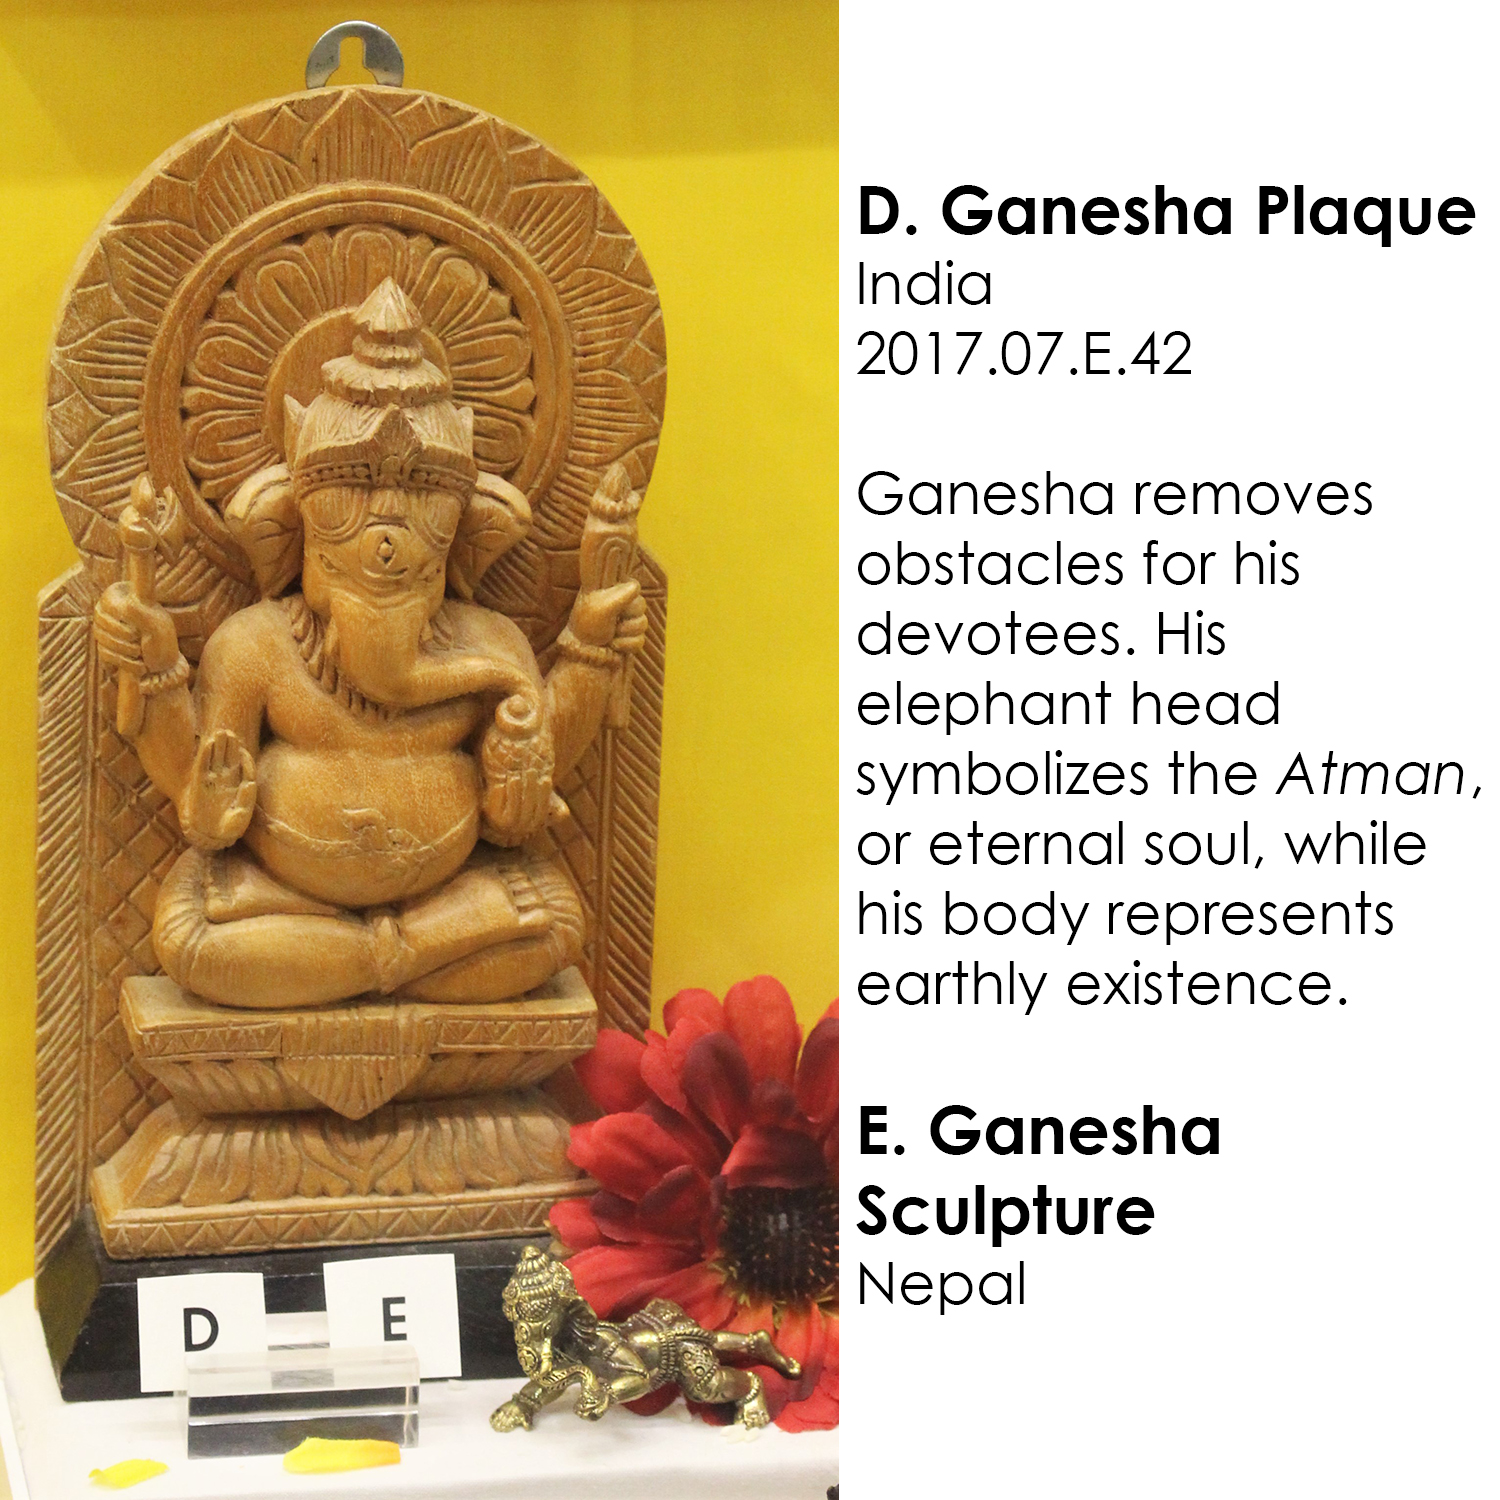 Ganesha plaque and sculpture from India